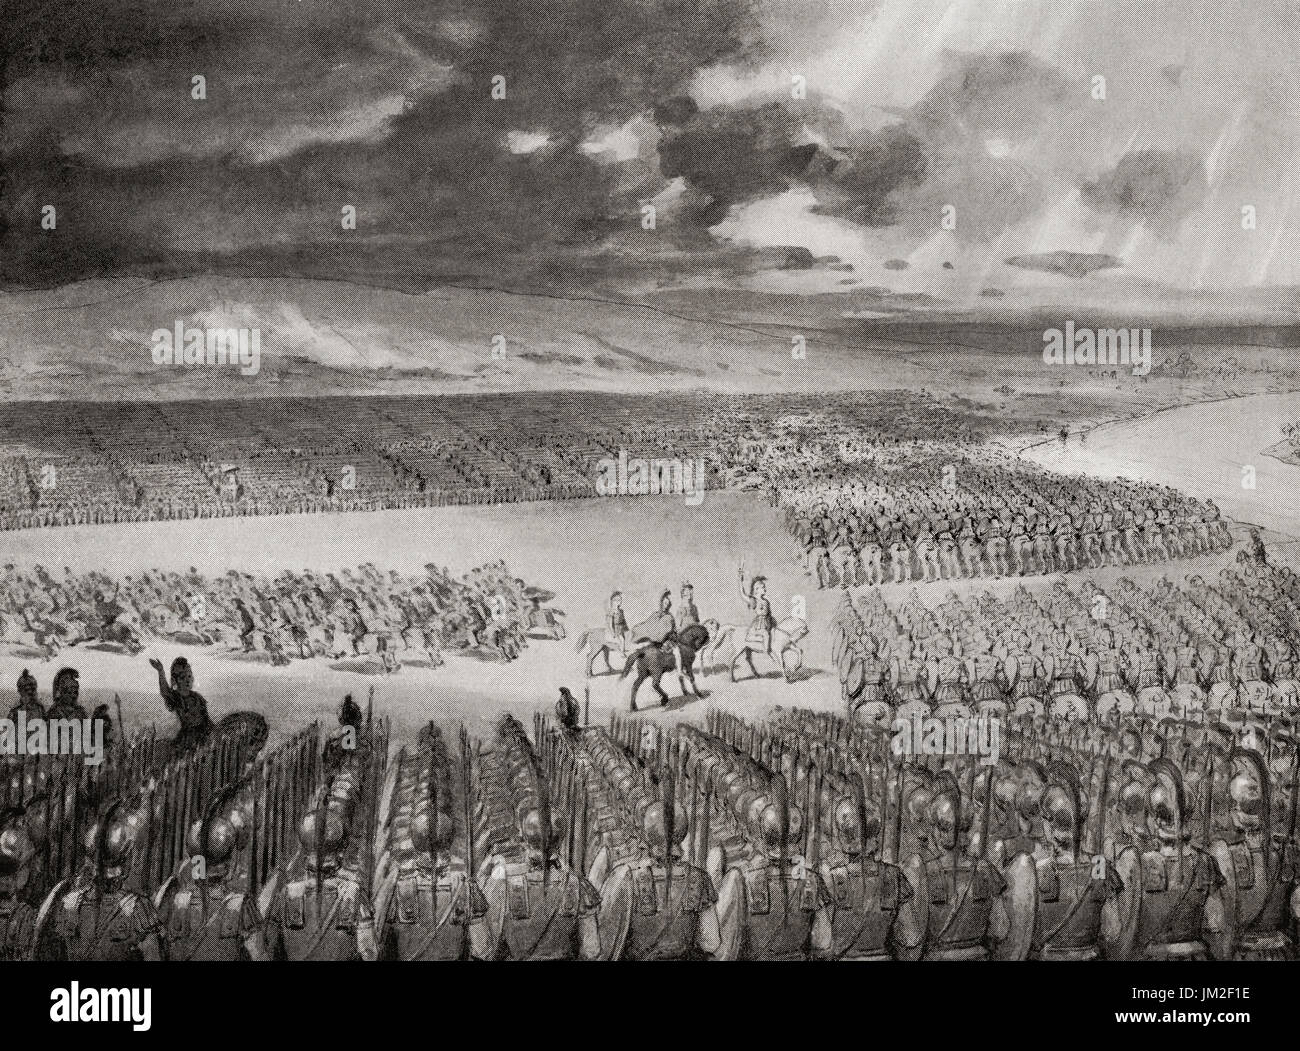 Porus or Poros, King of the Paurava awaits the attack of Alexander the Great prior to the Battle of the Hydaspes,  326 BC.   From Hutchinson's History of the Nations, published 1915. - Stock Image